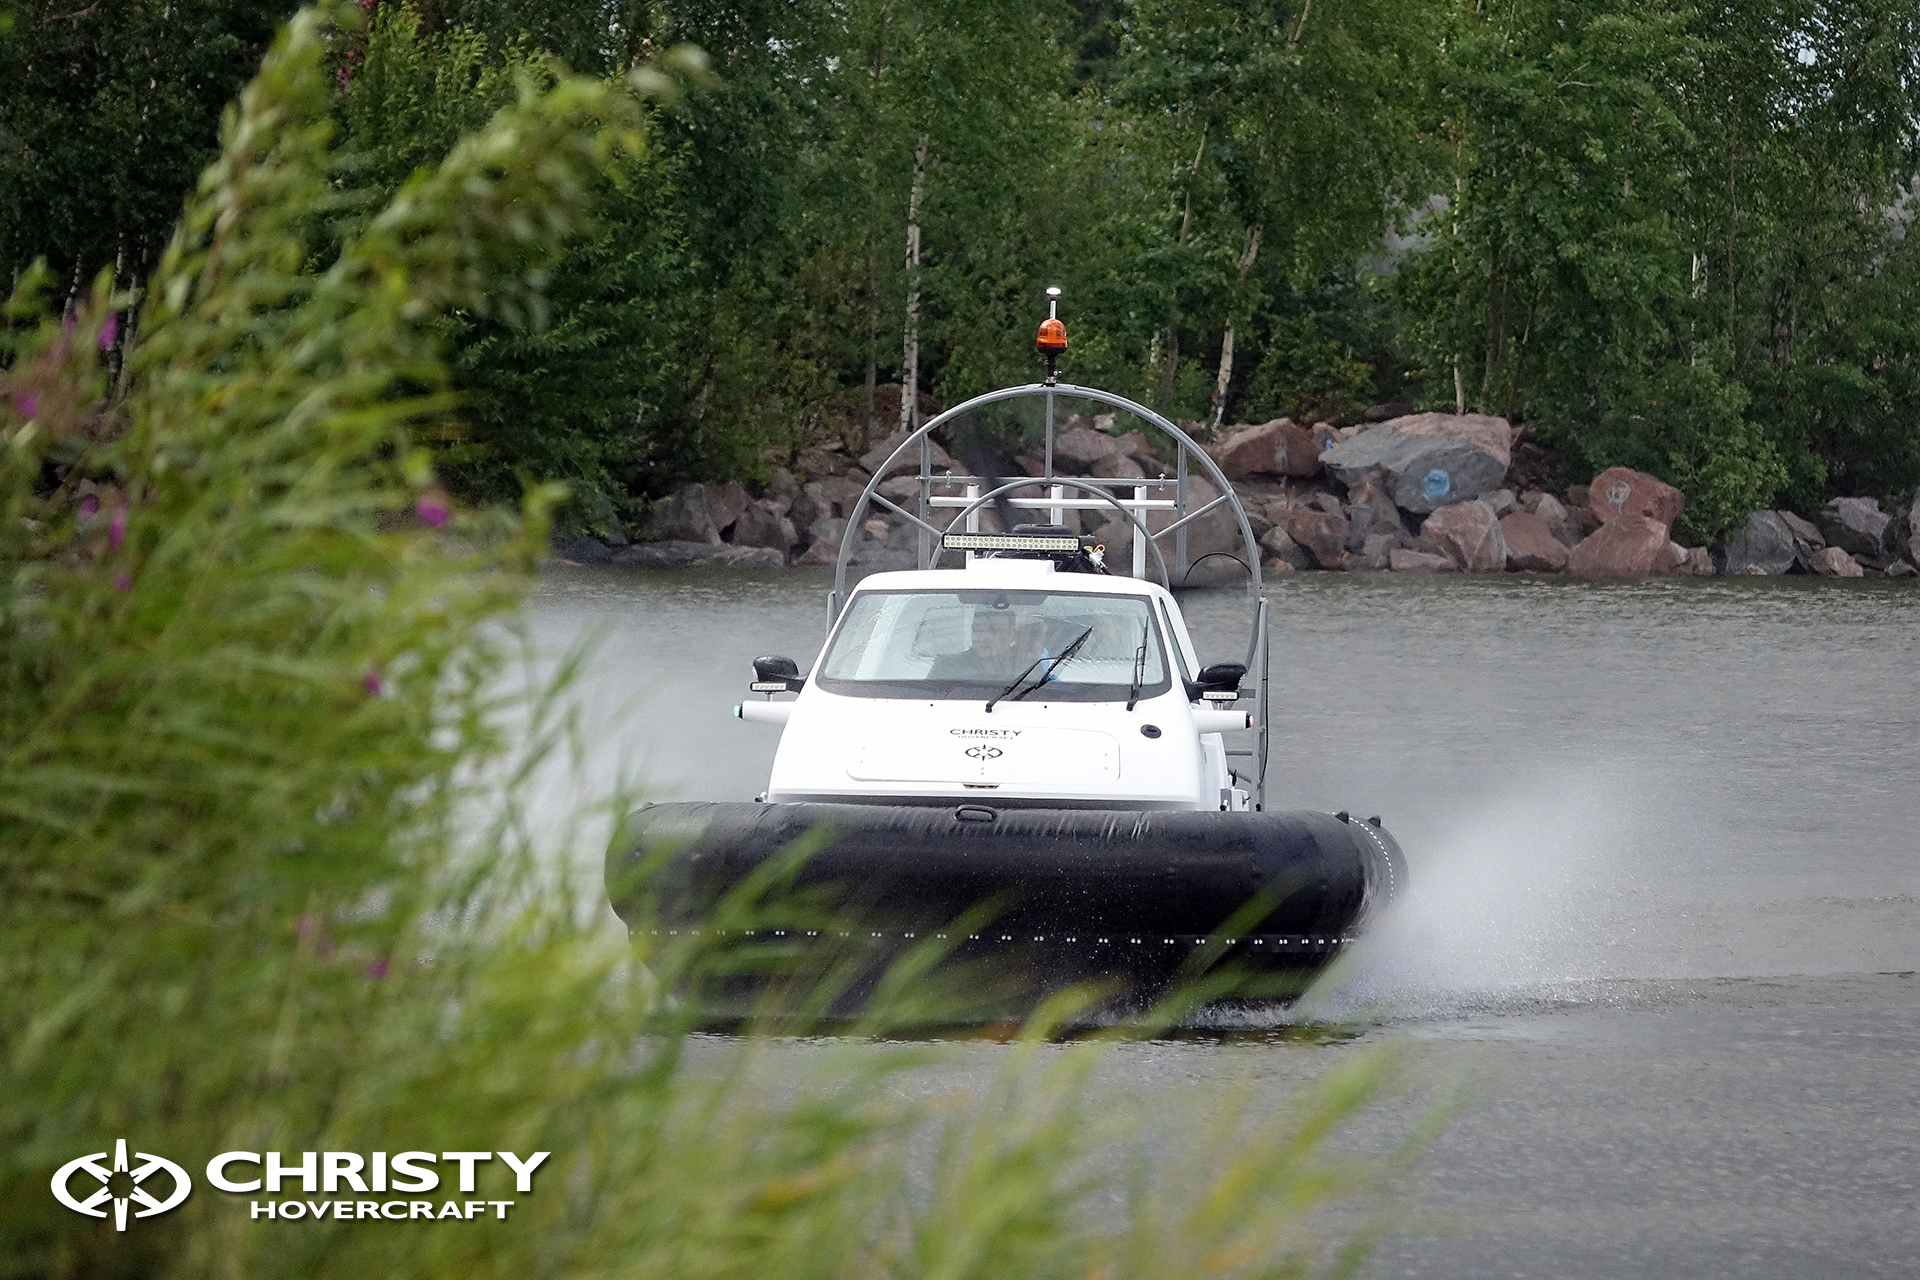 Hovercraft Christy 463 PC in Storm 290618 12.jpg | фото №10